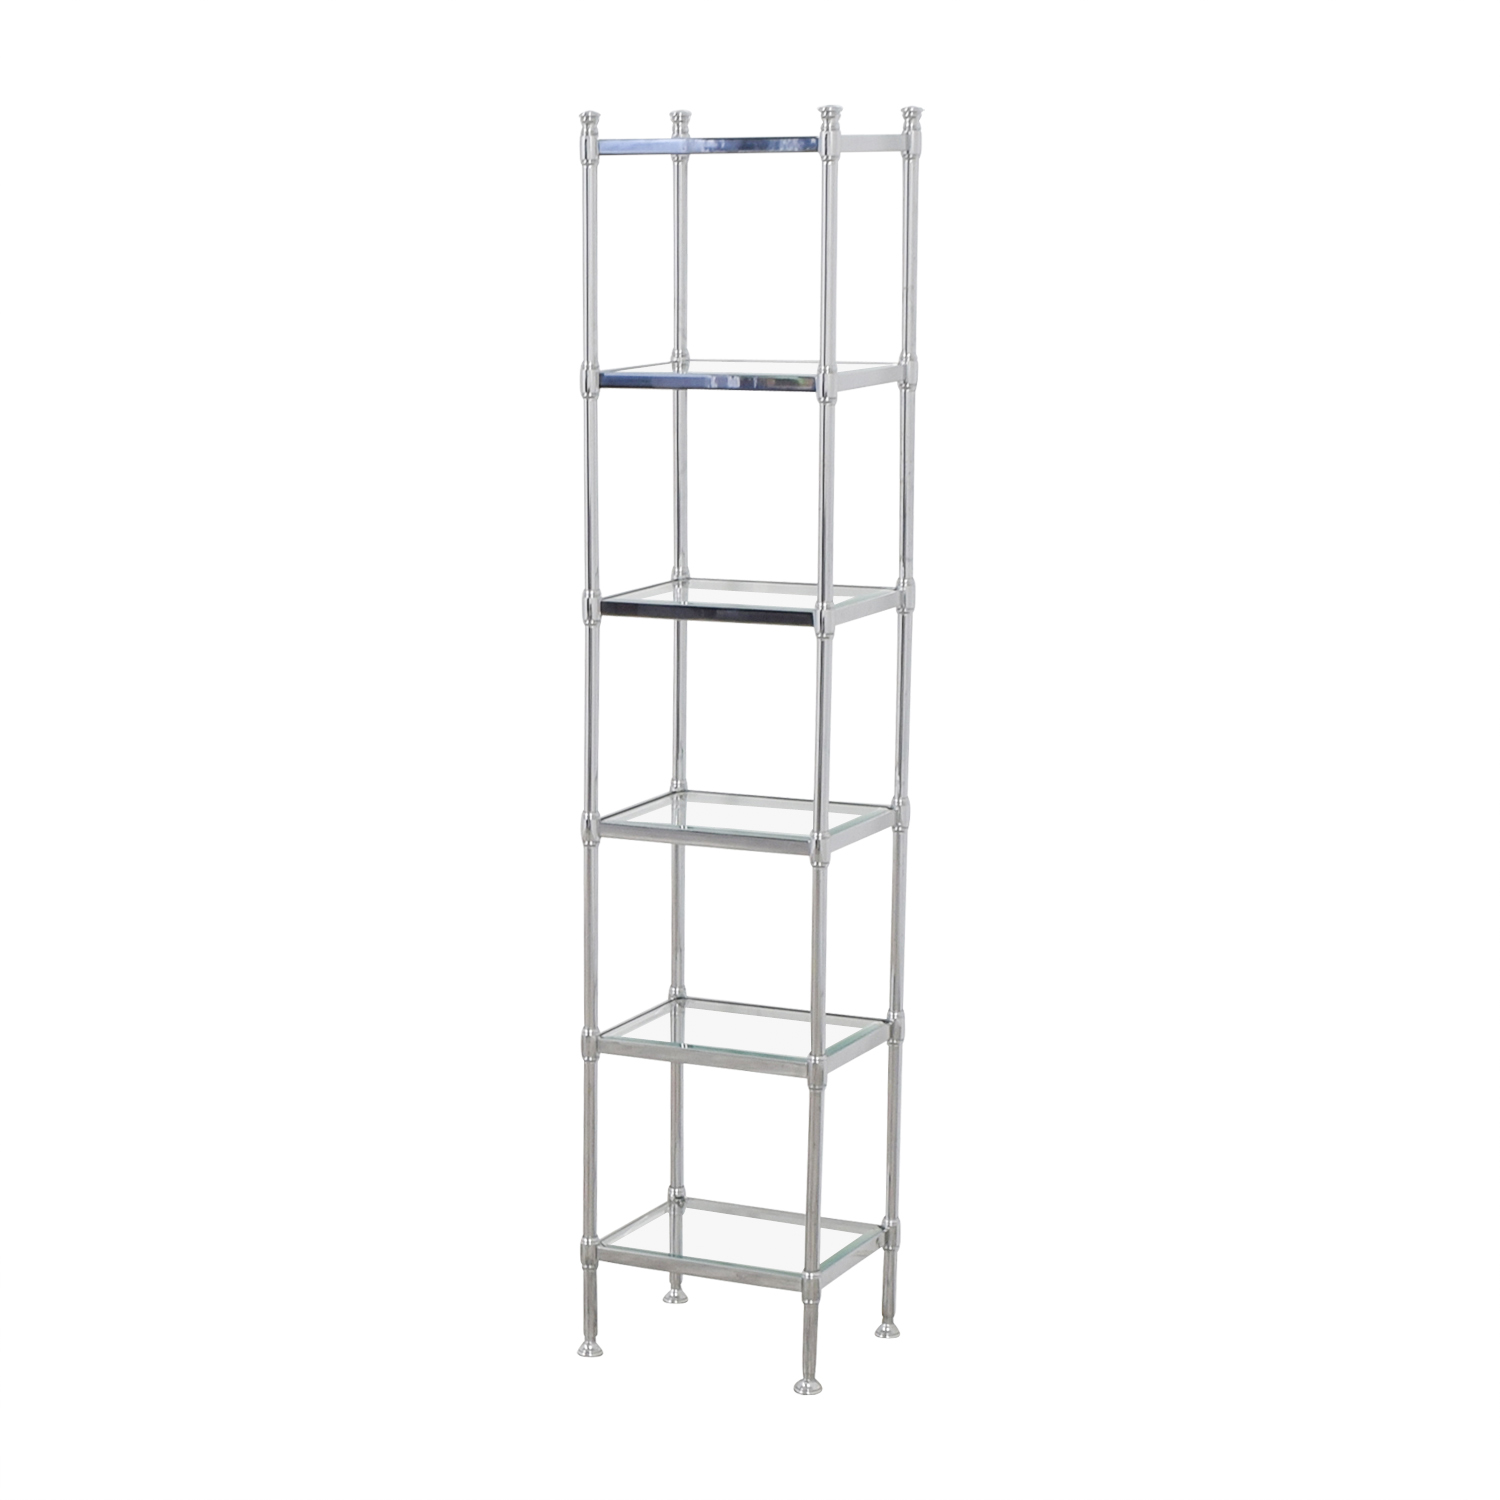 Waterworks Waterworks Chrome and Glass Bathroom Storage Etagere Bookcases & Shelving